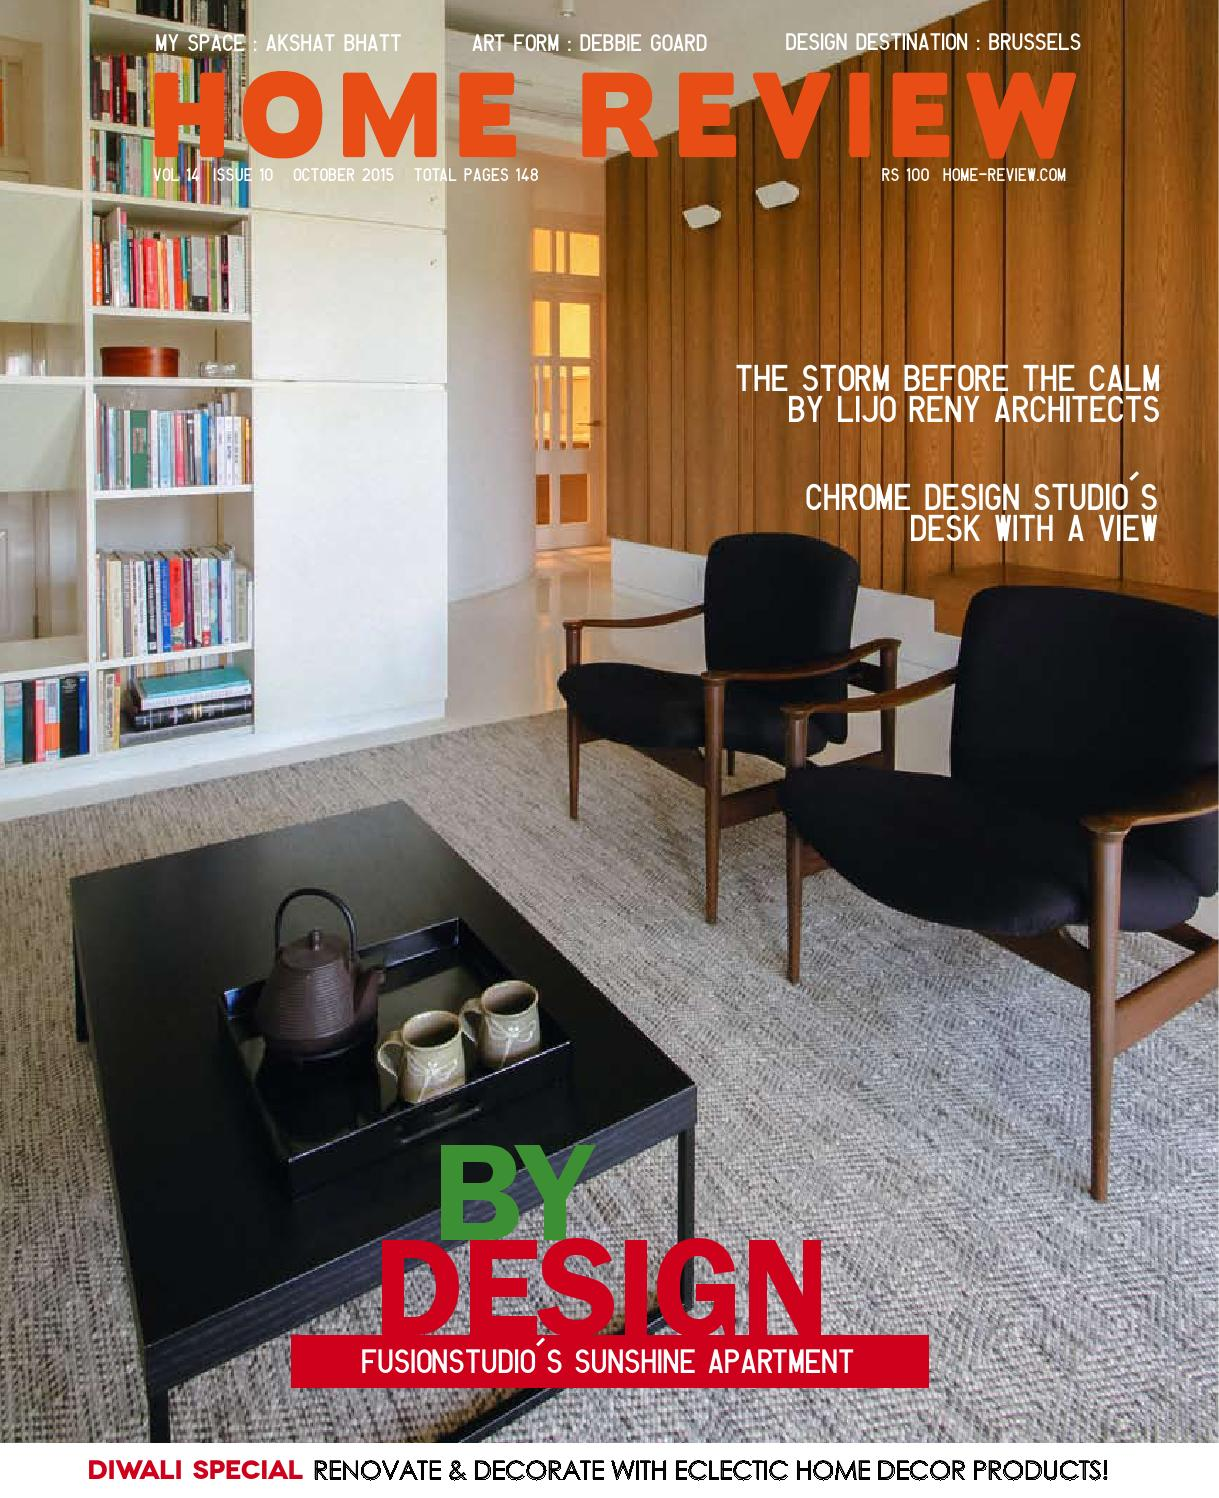 Home review october 2015 by home review issuu